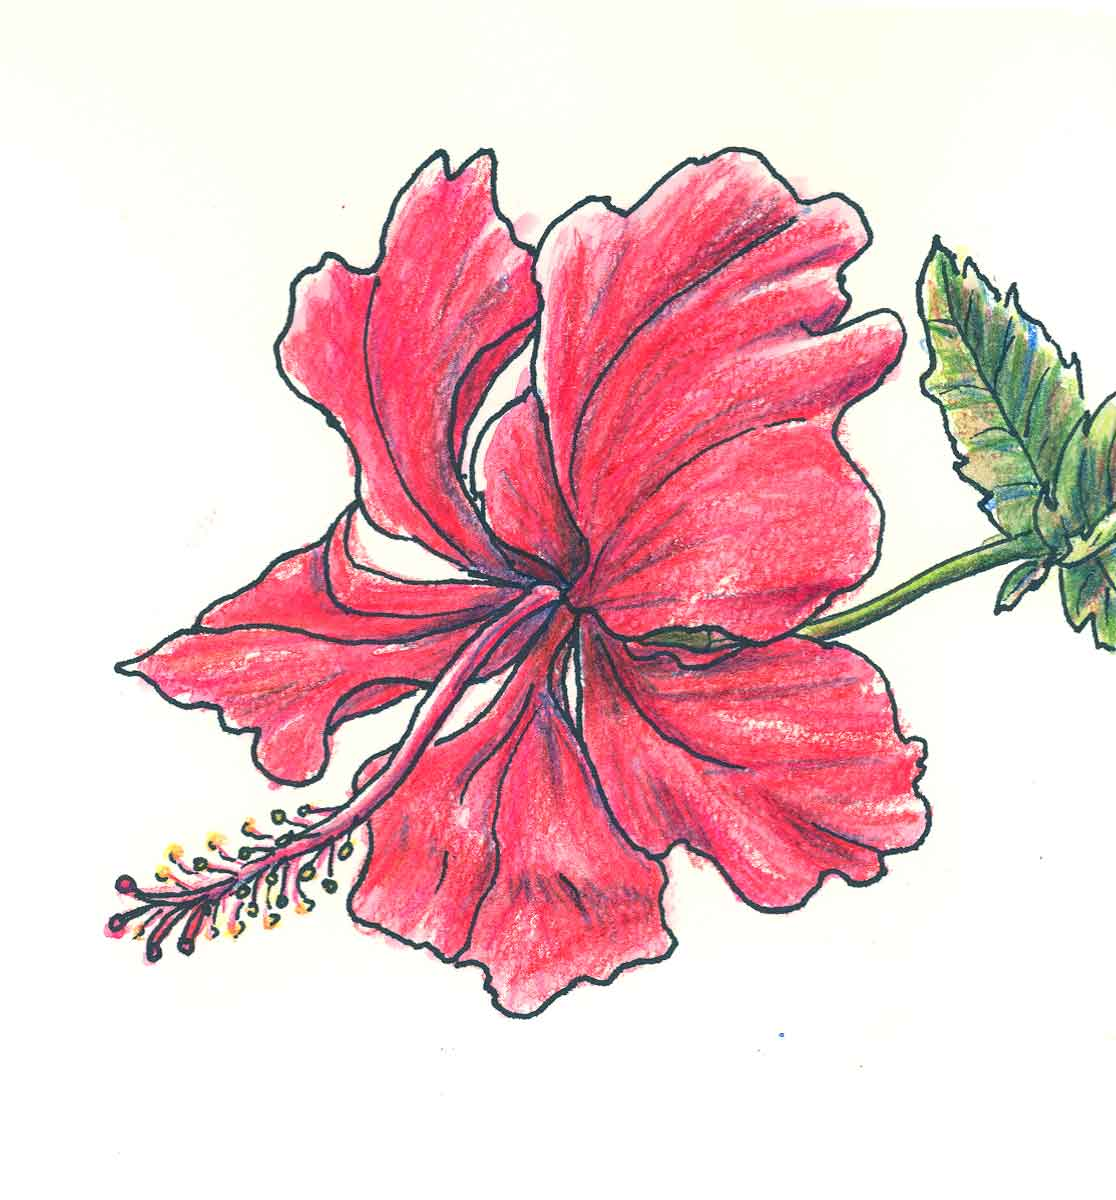 Drawn hibiscus beautiful flower Google of drawings Search Search